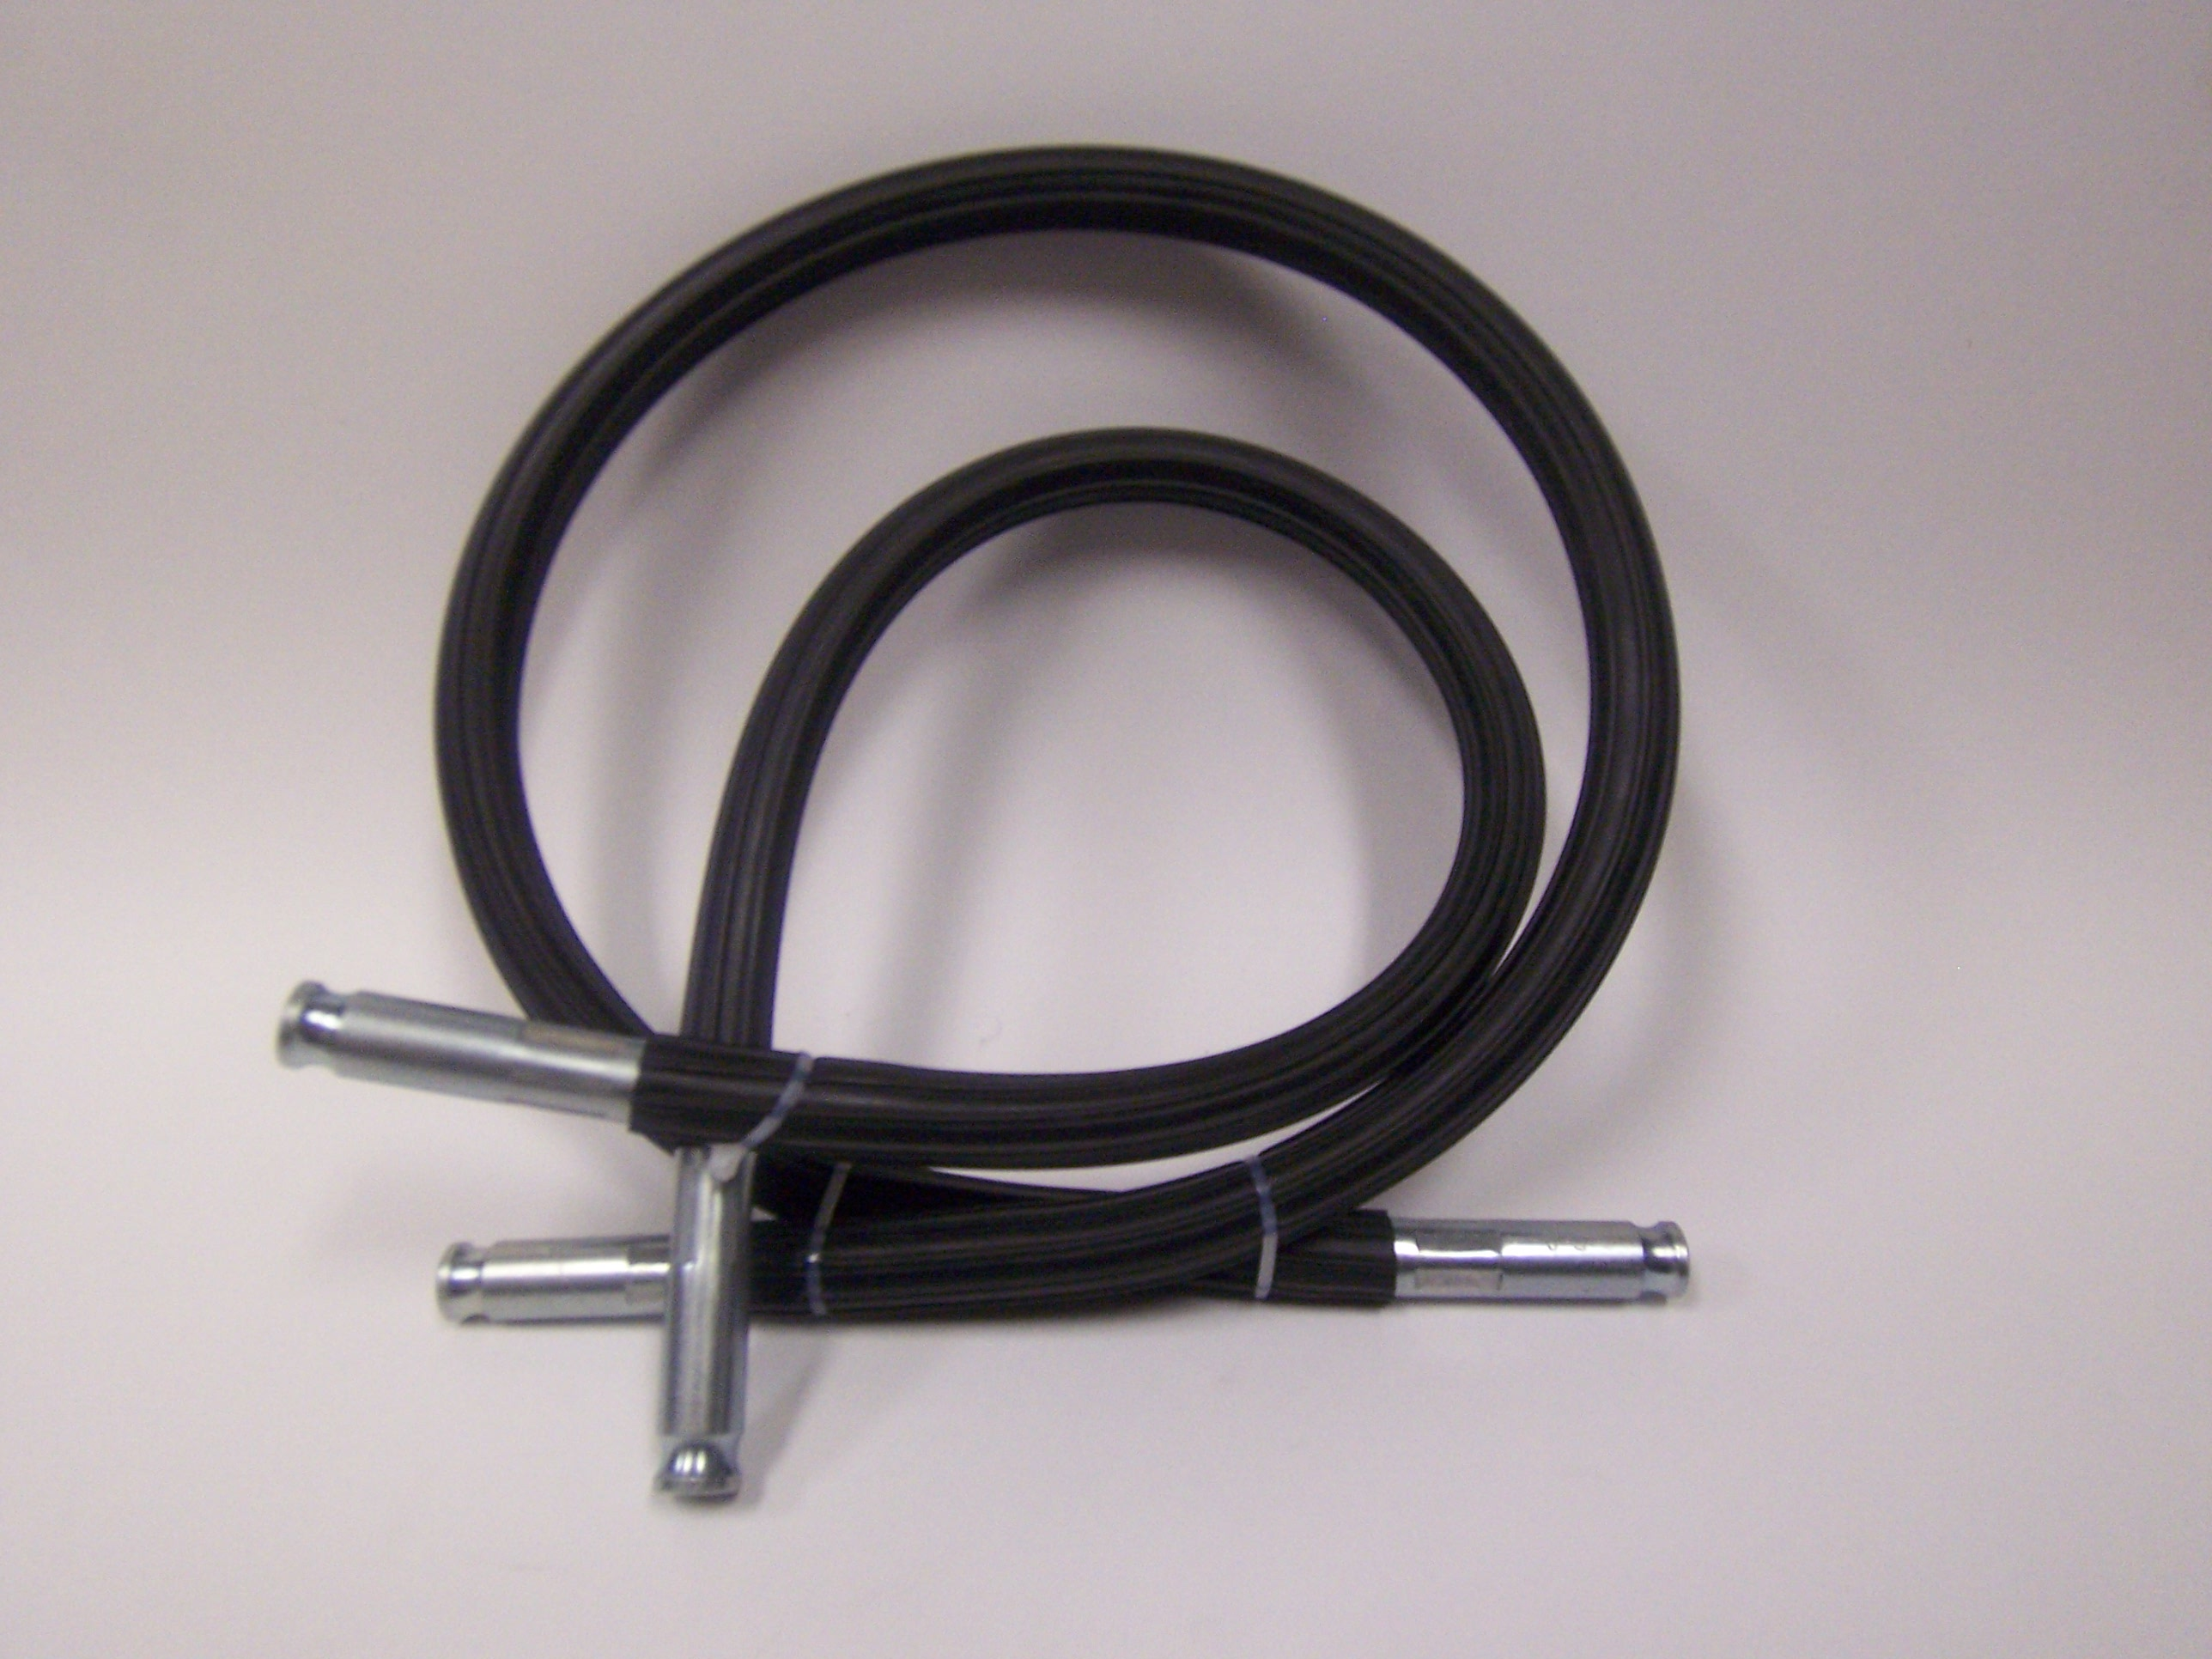 WIRE FEED CABLE